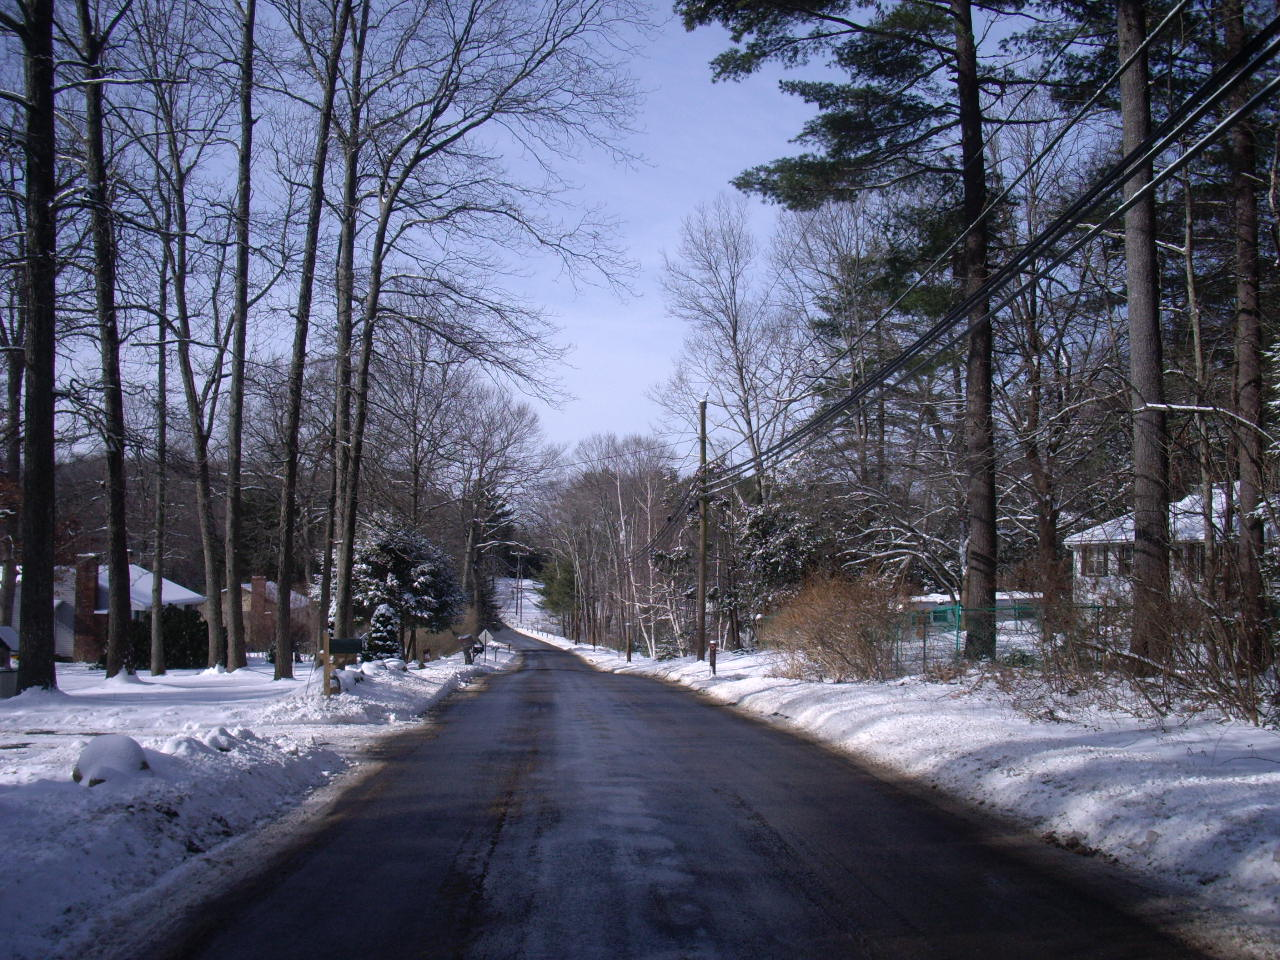 Storrs, Connecticut, USA